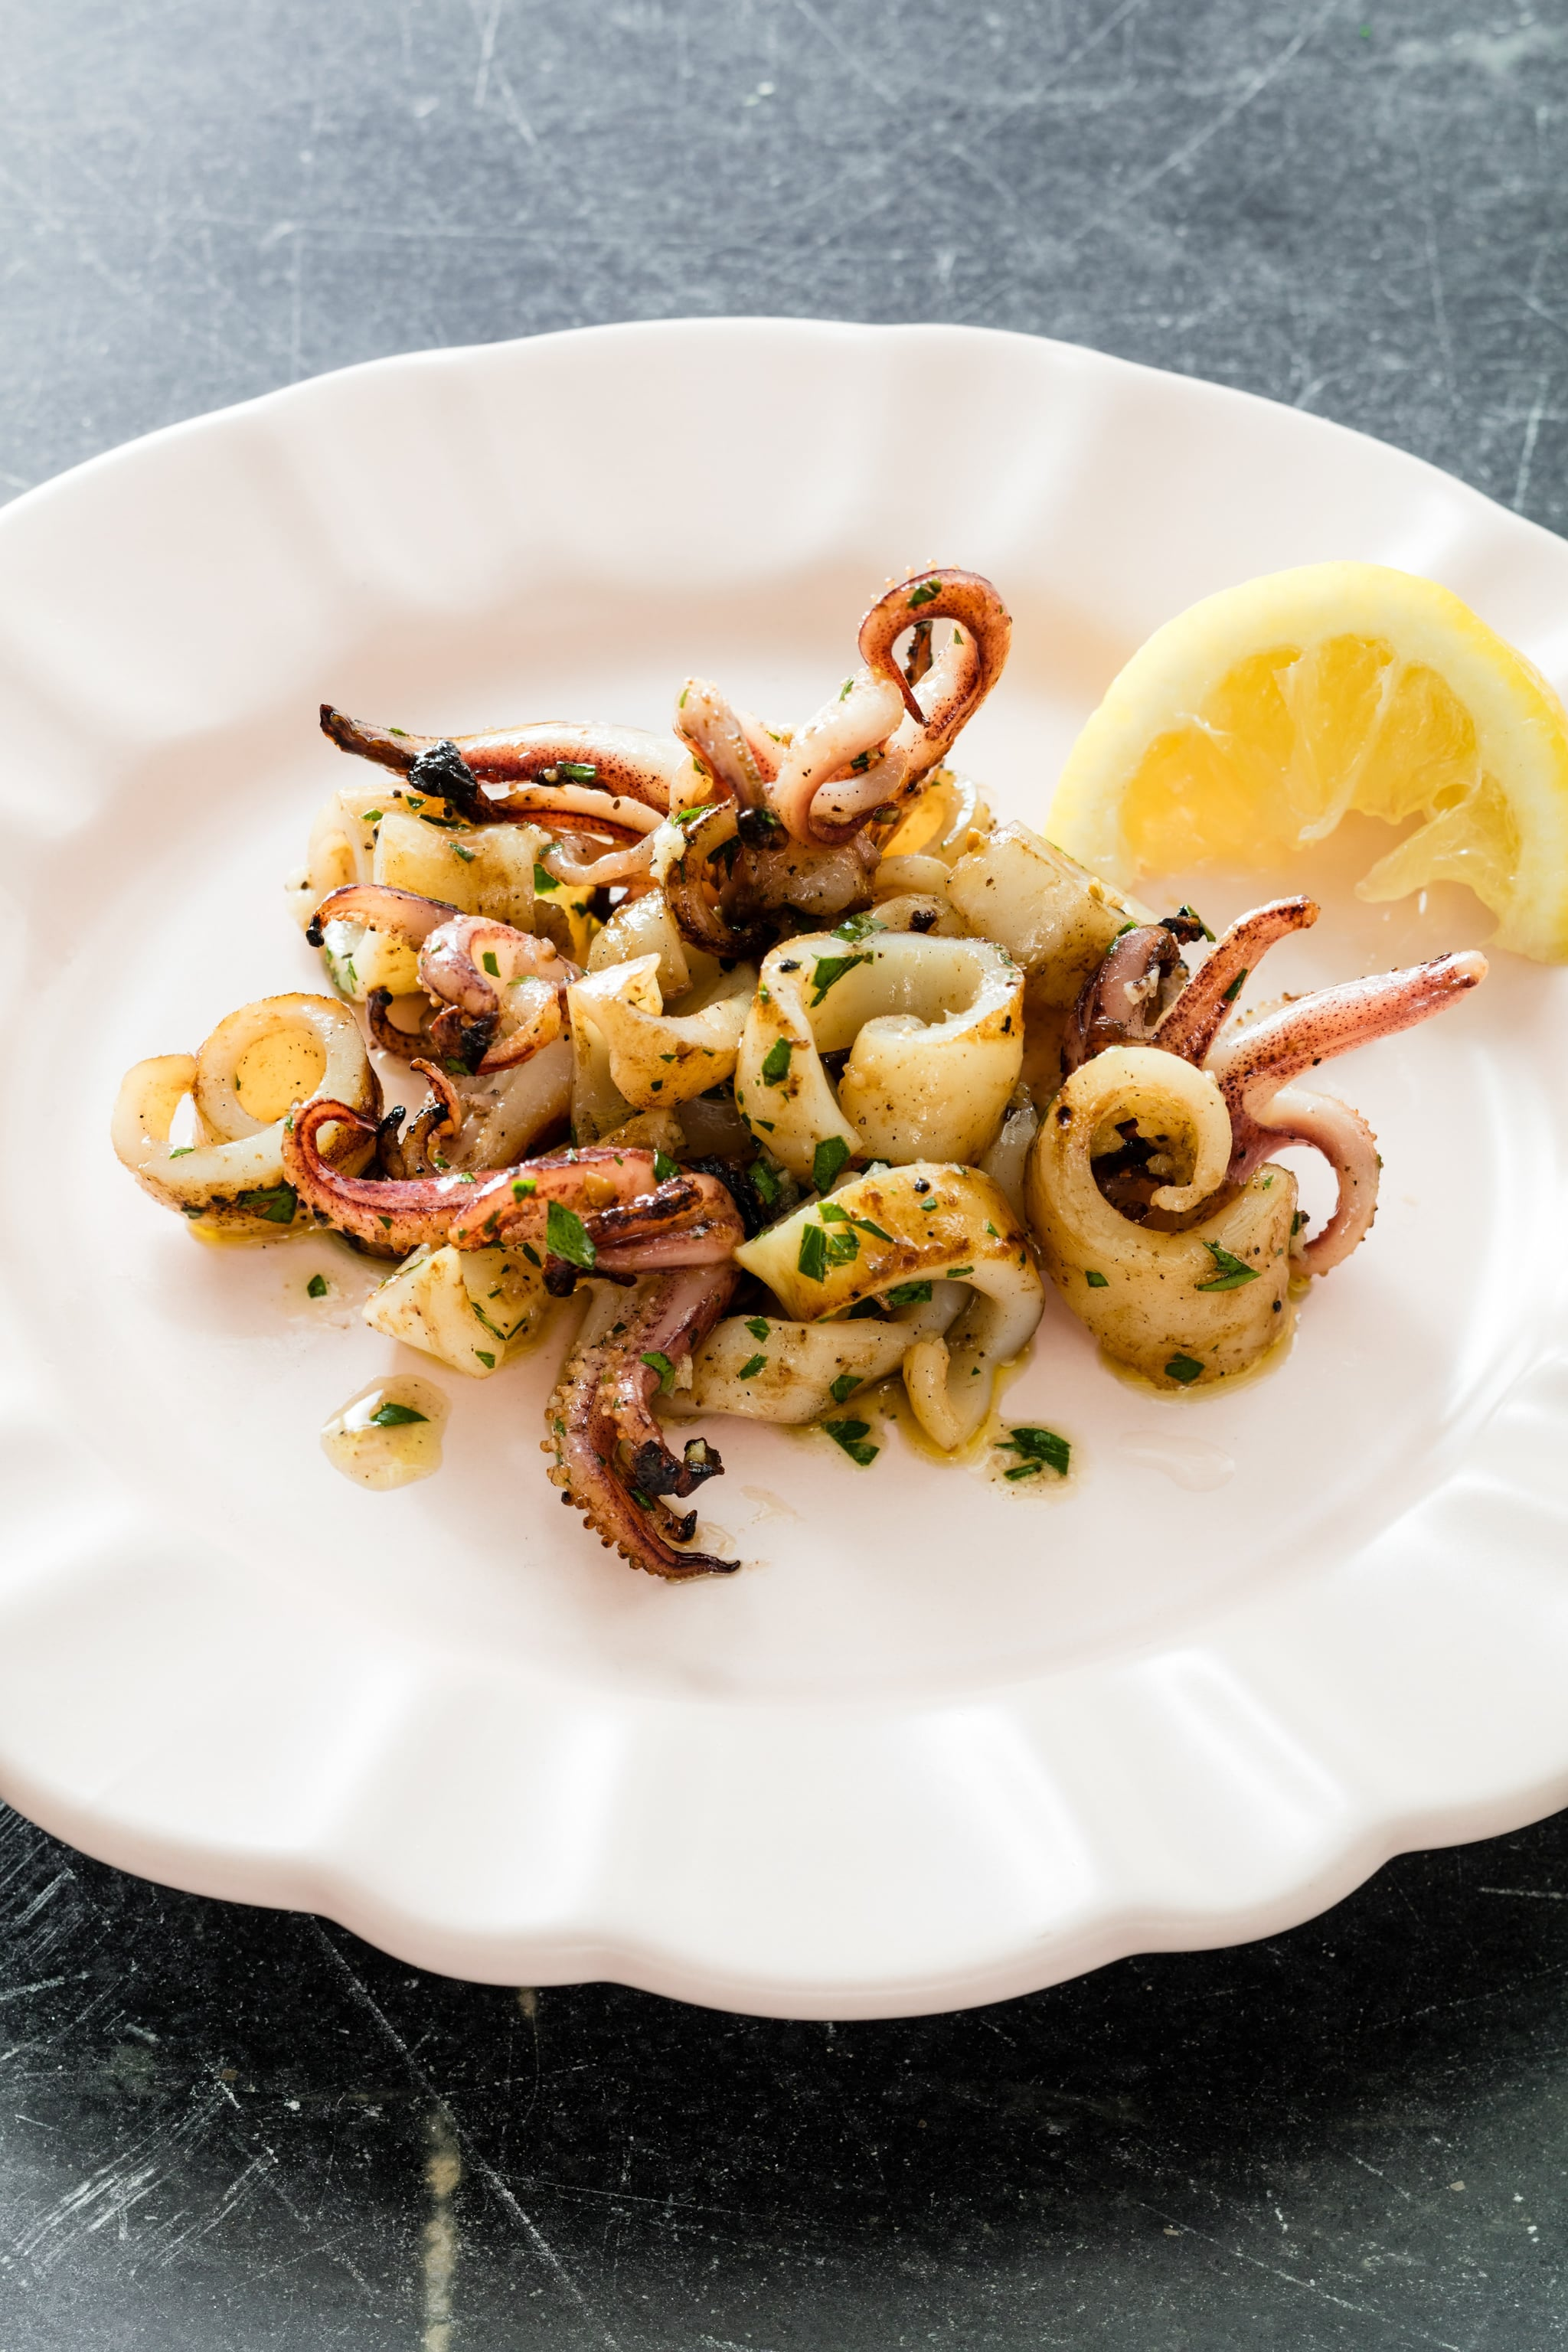 A Simple Grilled Calamari Recipe You (Yes, You!) Can Make at Home